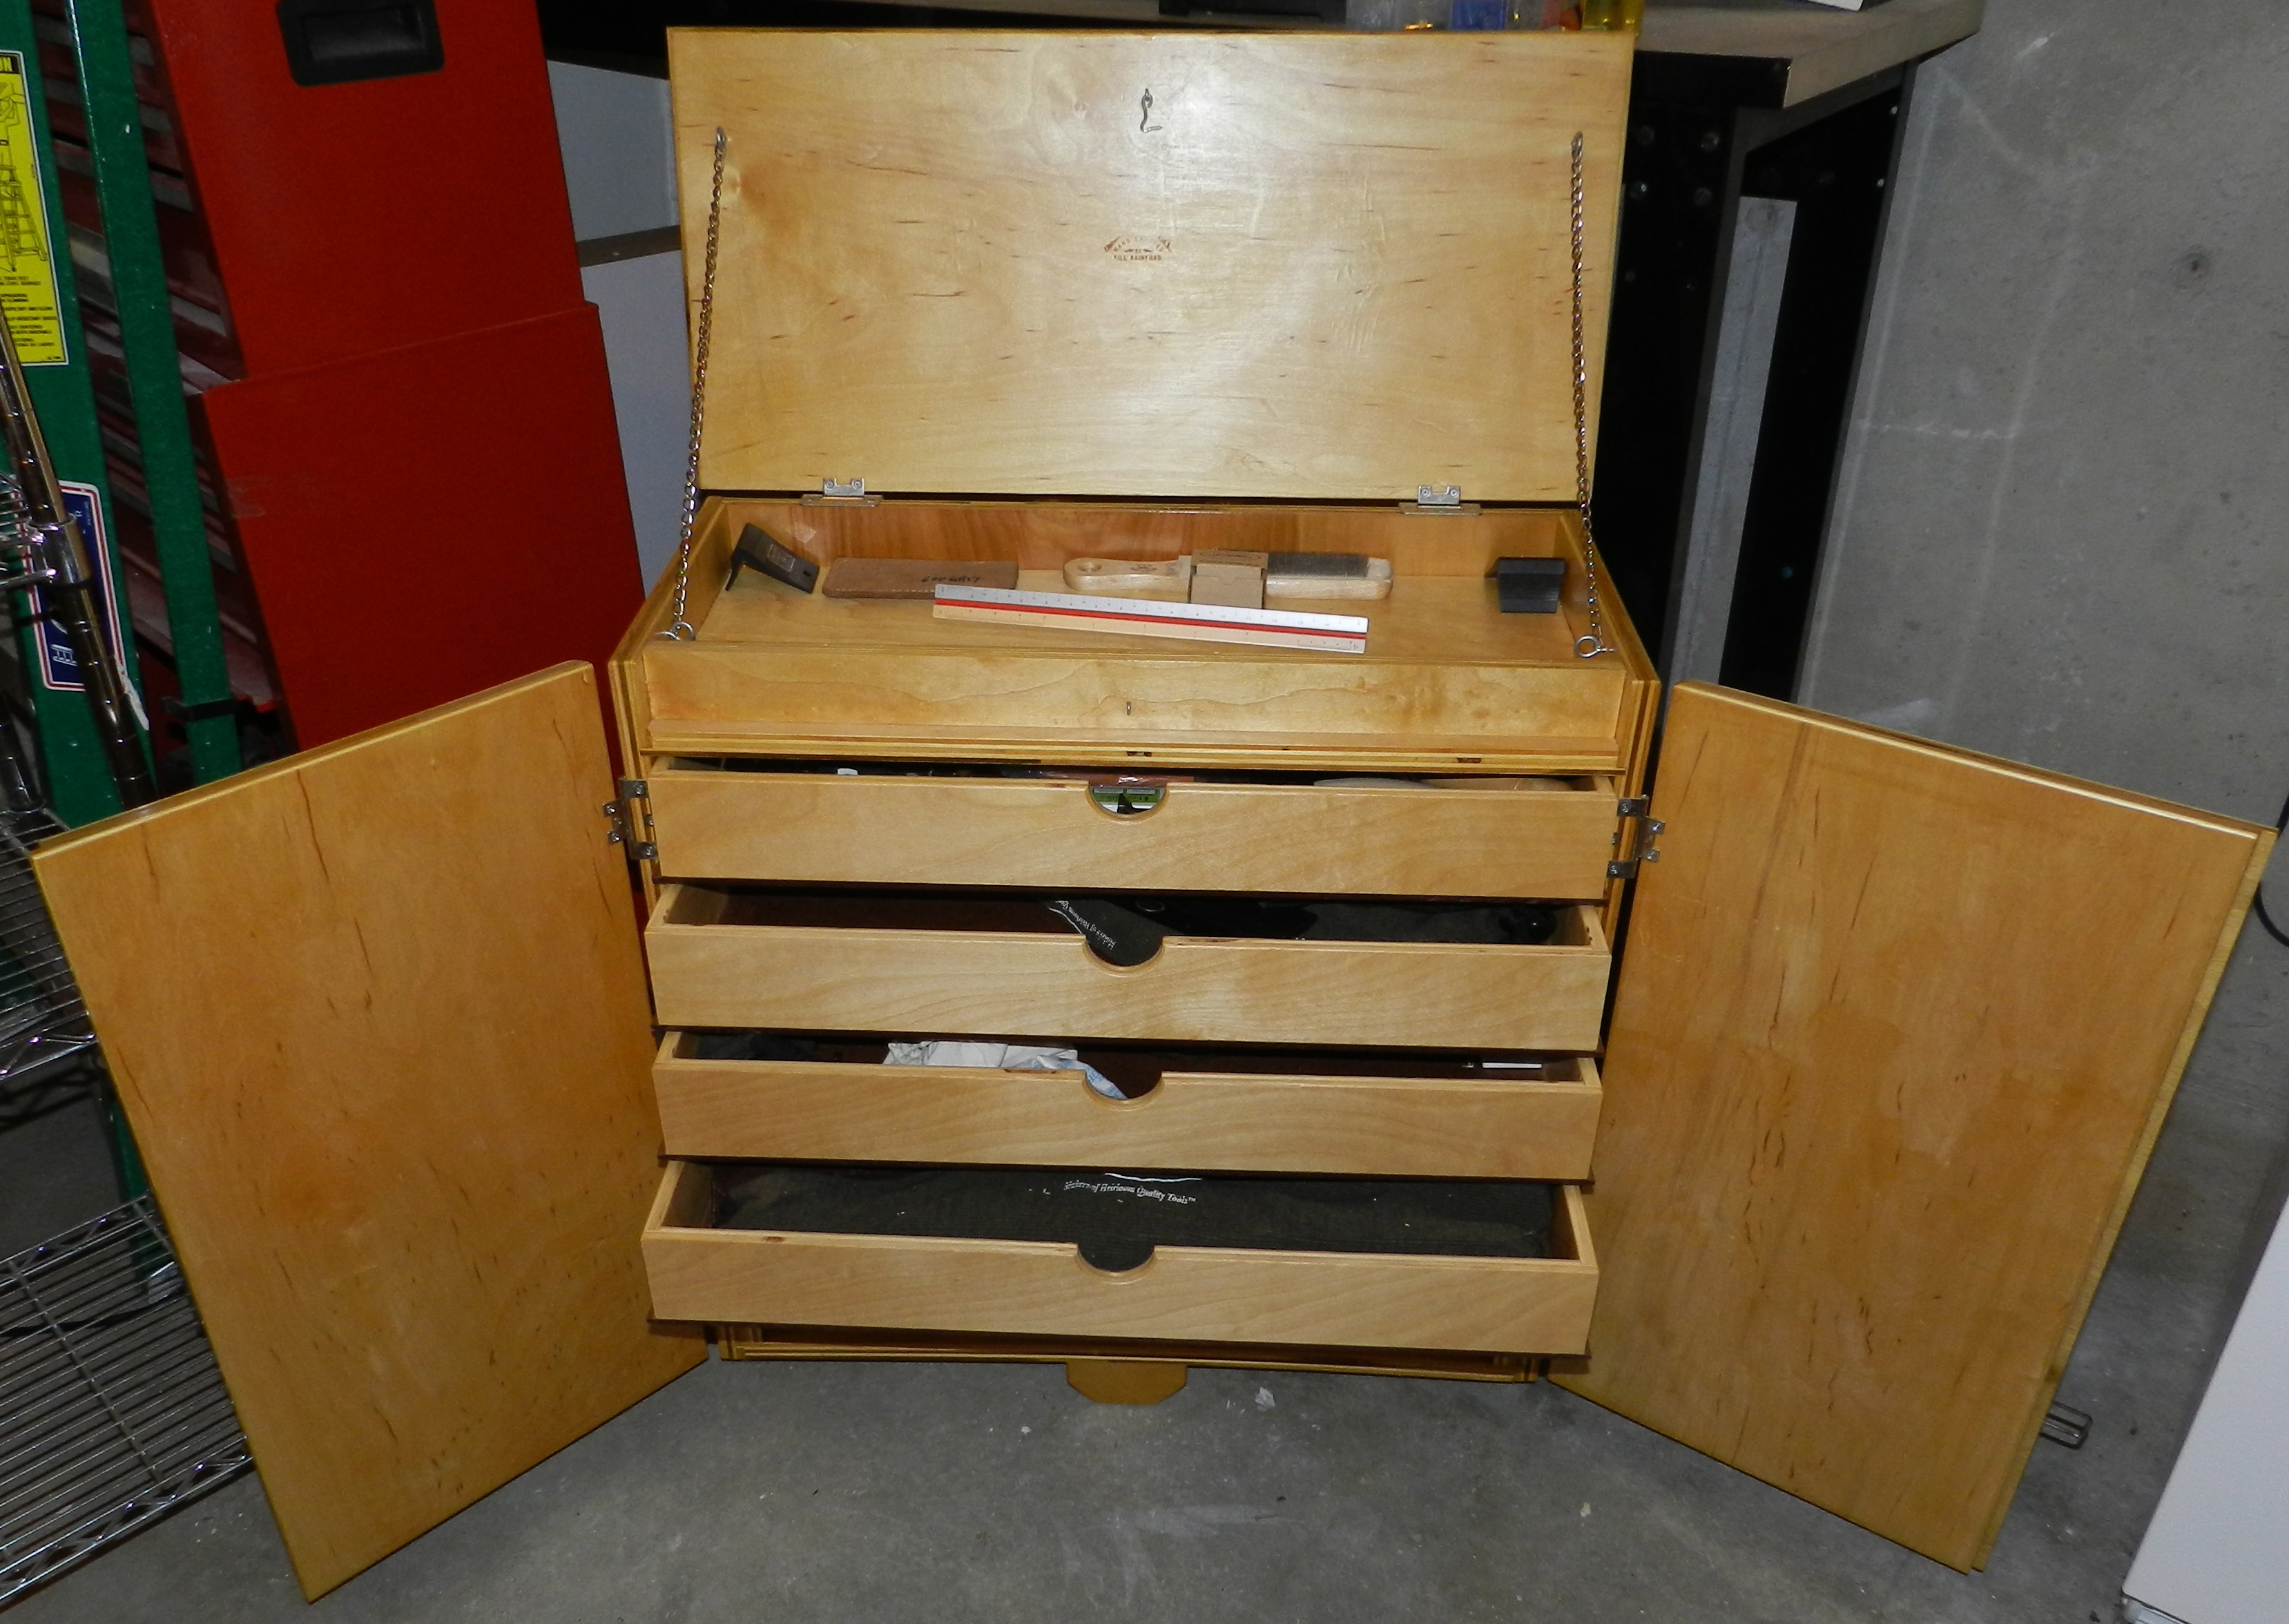 Step Stool Toolbox Rolling Tool Chest Rainford